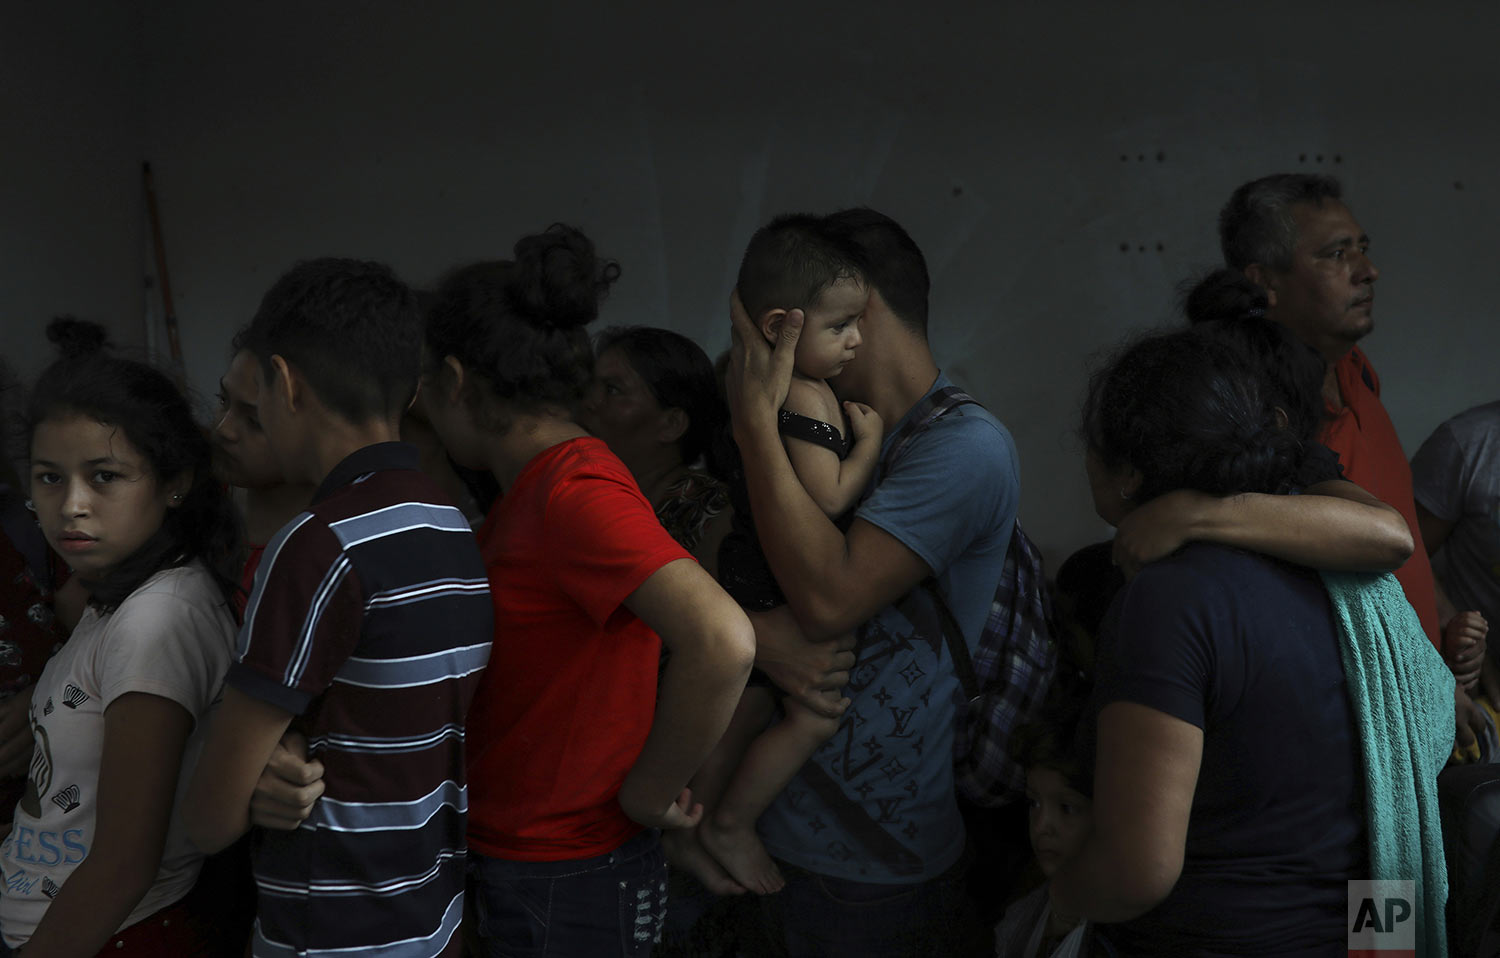 Detained migrants stand together in a storage room at the back of the Azteca Hotel where they tried to hide from  Mexican immigration agents conducting a raid in Veracruz, Mexico, Thursday, June 27, 2019. Under increasing U.S. pressure to reduce the flow of hundreds of thousands of Central Americans through Mexican territory, Mexico's government has stepped up enforcement. (AP Photo/Felix Marquez)